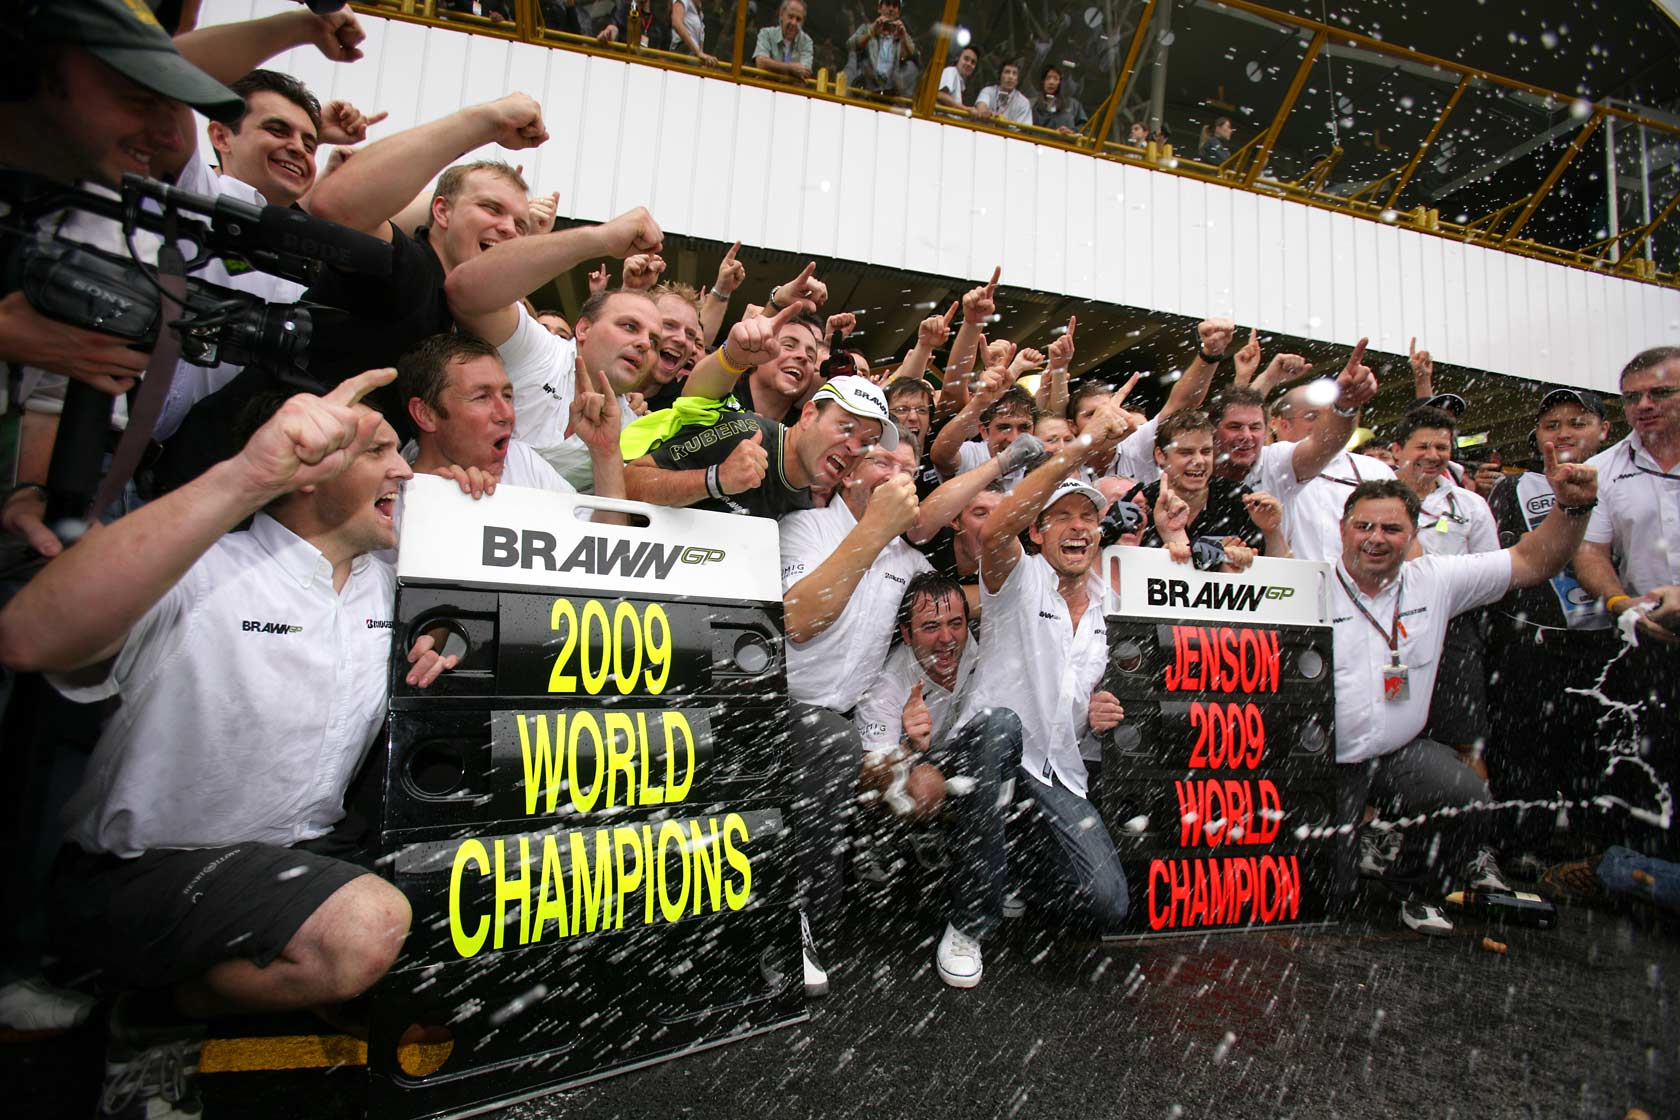 button-brawn-gp-f1-2009-brazil-celebration